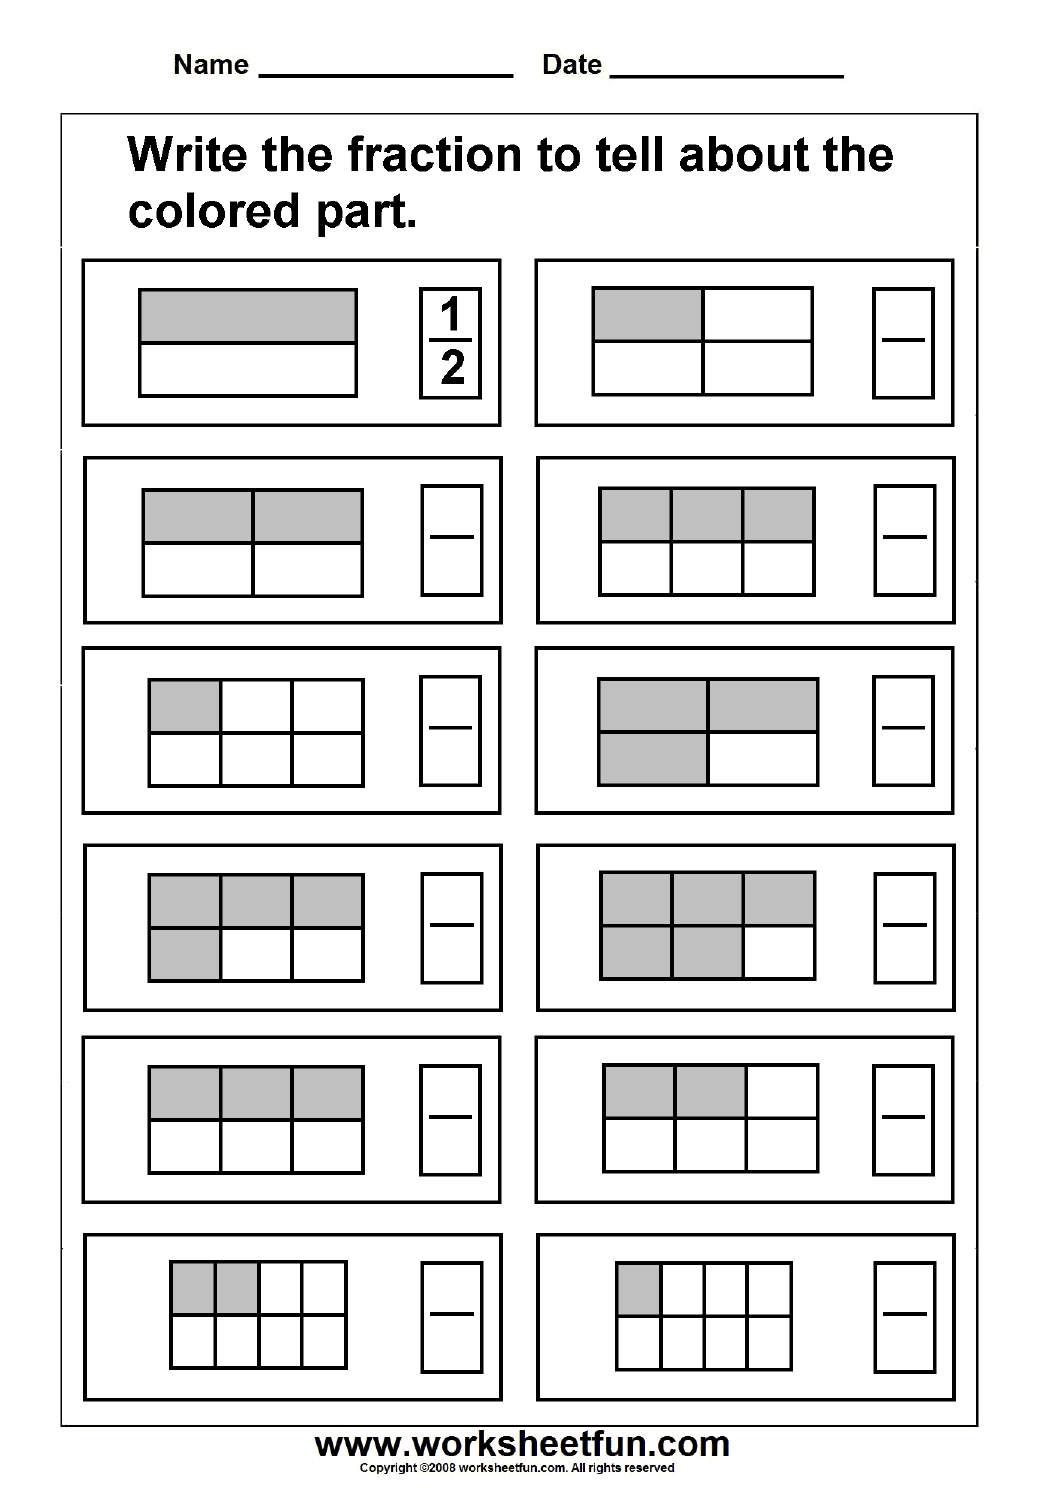 Fraction Worksheets For Grade 3 Site Pinterest For